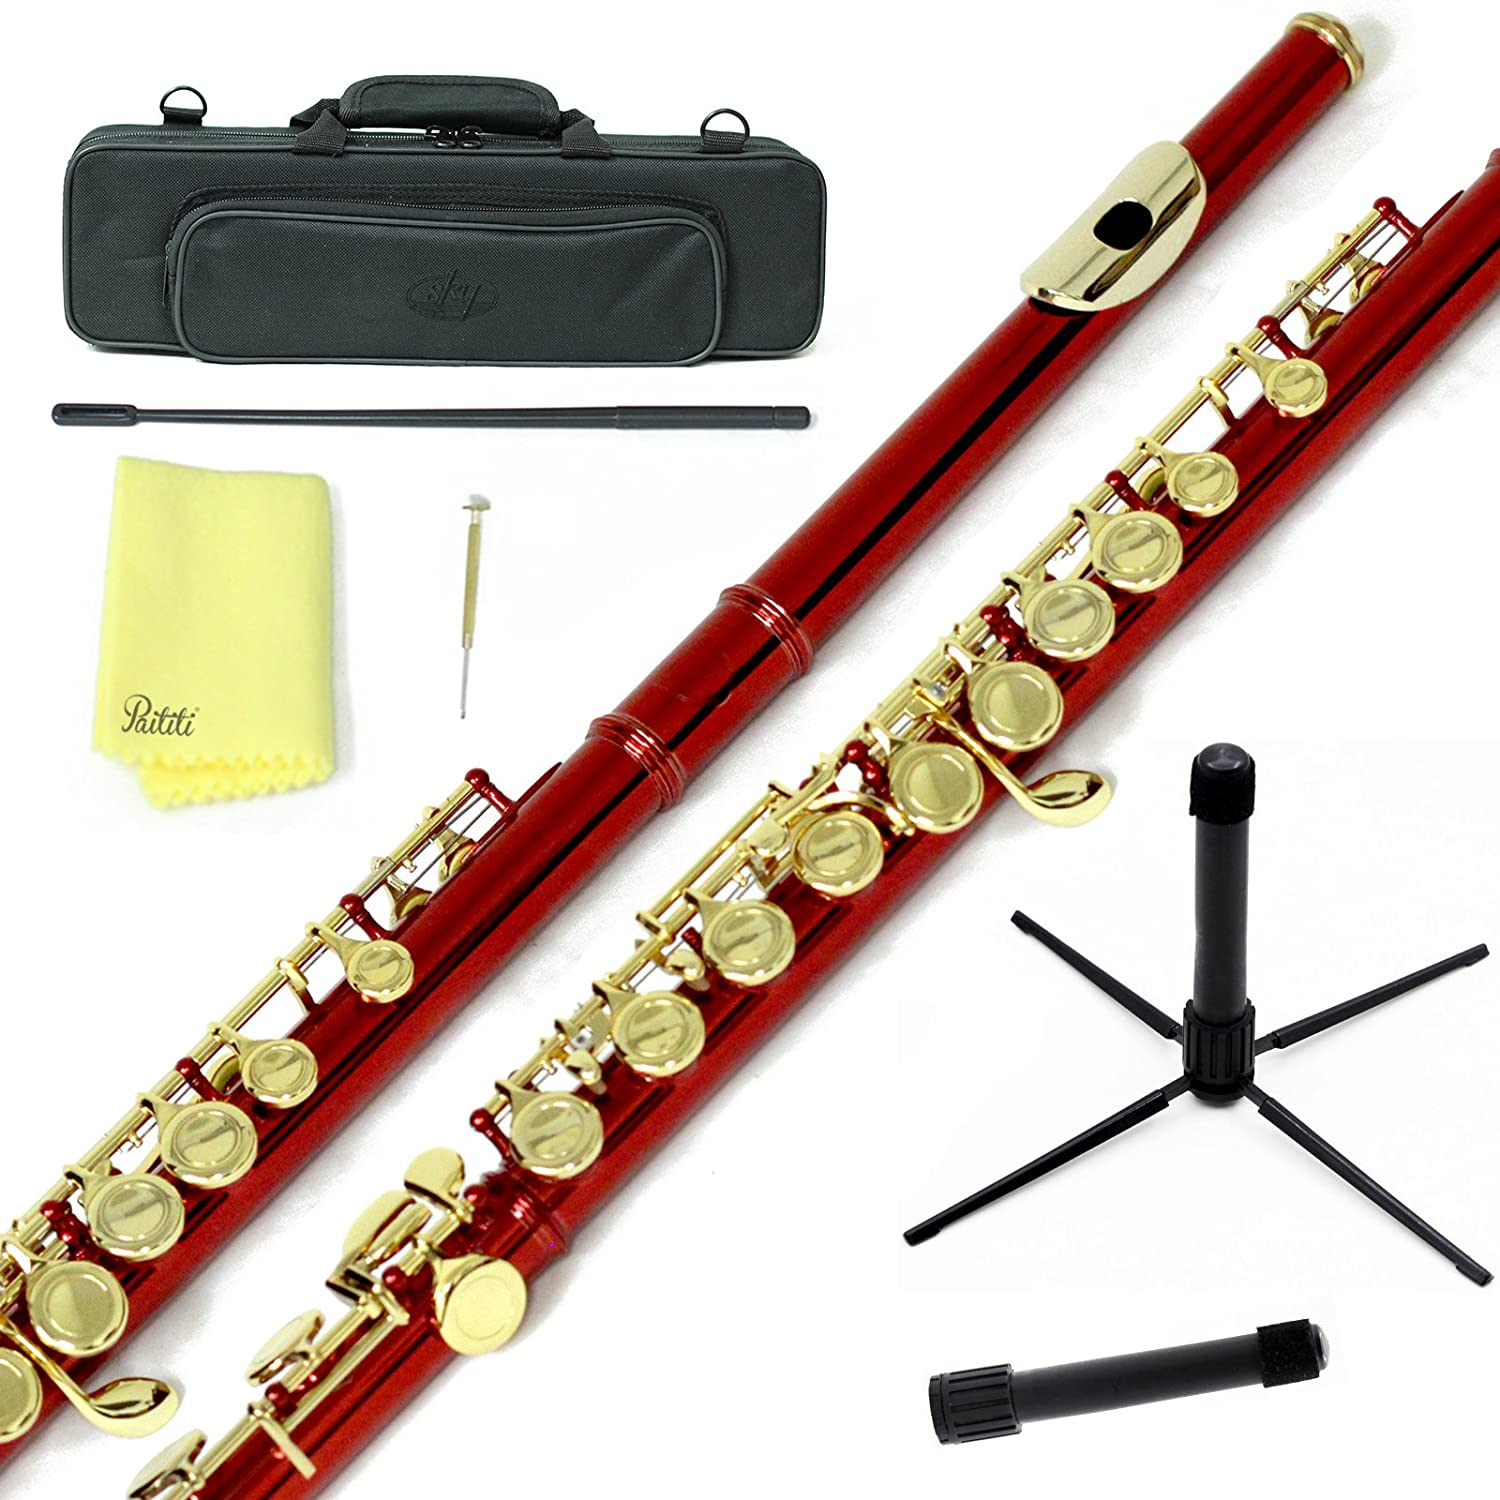 Sky C Flute with Lightweight Case, Cleaning Rod, Cloth, Joint Grease and Screw Driver - Silver/Silver Closed Hole 762022612806